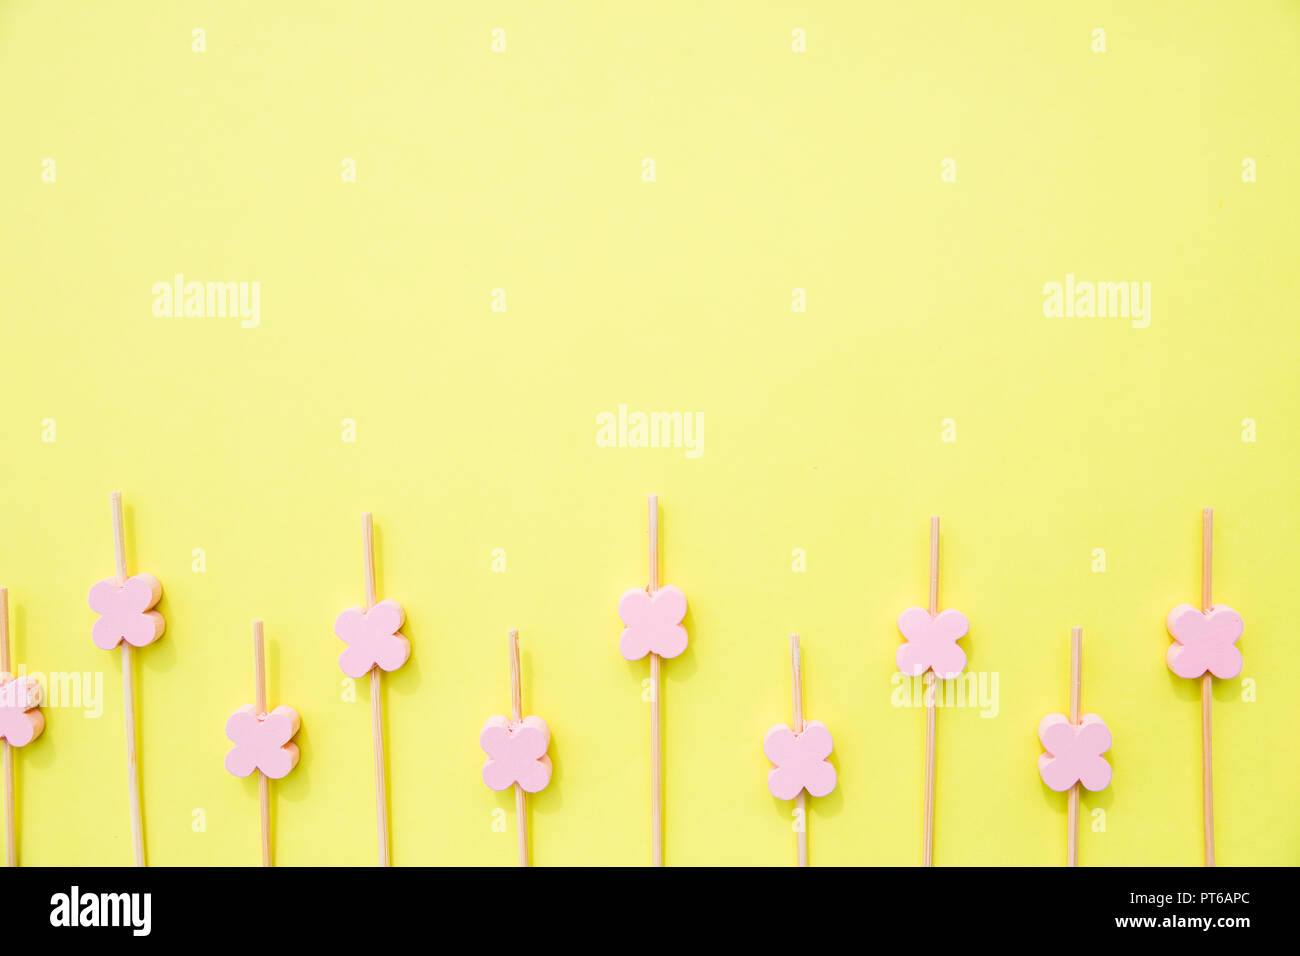 Ecological skewer isolated on yellow background.wooden sticks with flower beads for food decoration. Skewers for the preparation of canapes. Props for snack food.Copy space - Stock Image